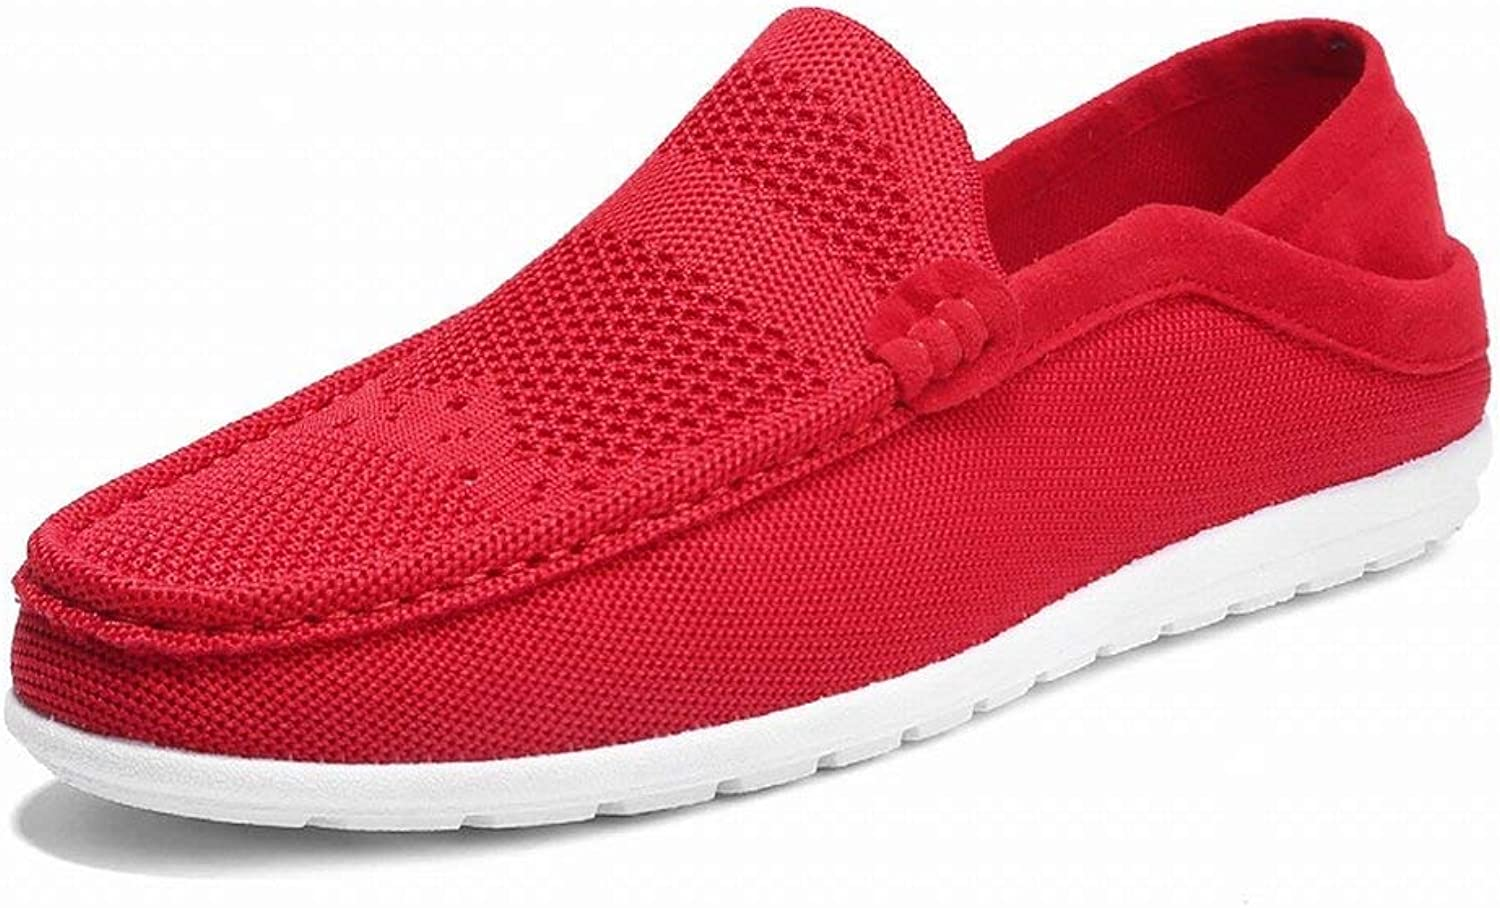 Fuxitoggo Men's Foot Peas shoes Trend Low To Help A Pedal Lazy shoes Men's shoes Breathe (color   Red, Size   42)